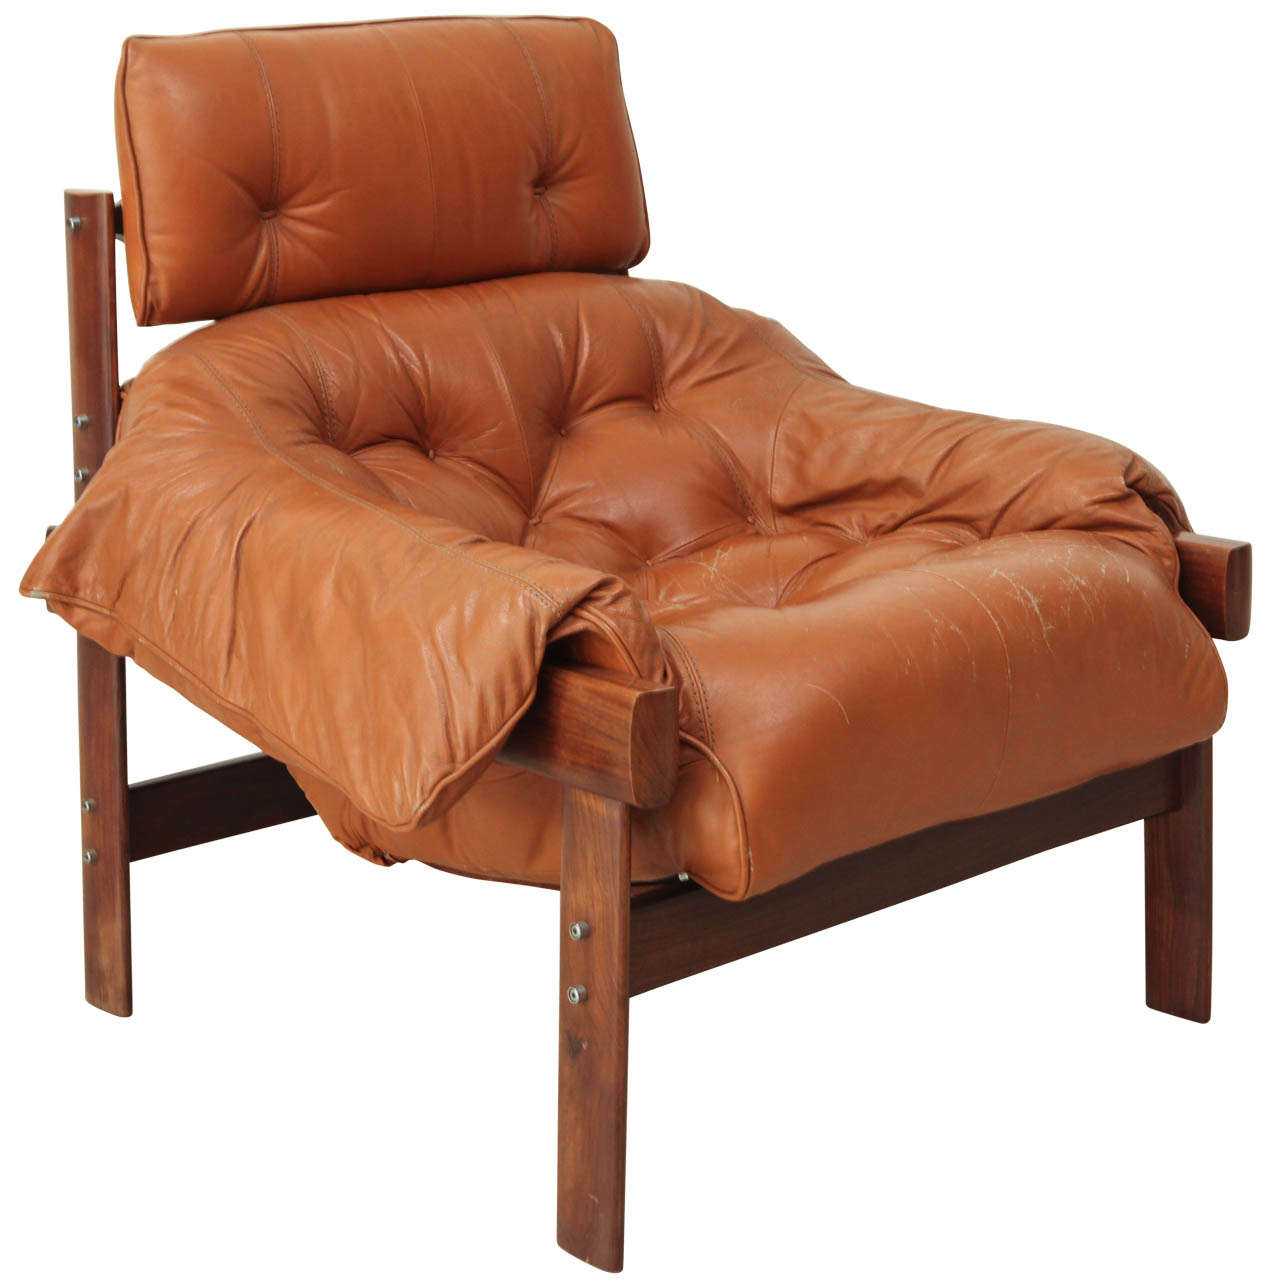 Leather Sofa Repairs Enfield: Percival Lafer Lounge Chair In Original Leather At 1stdibs